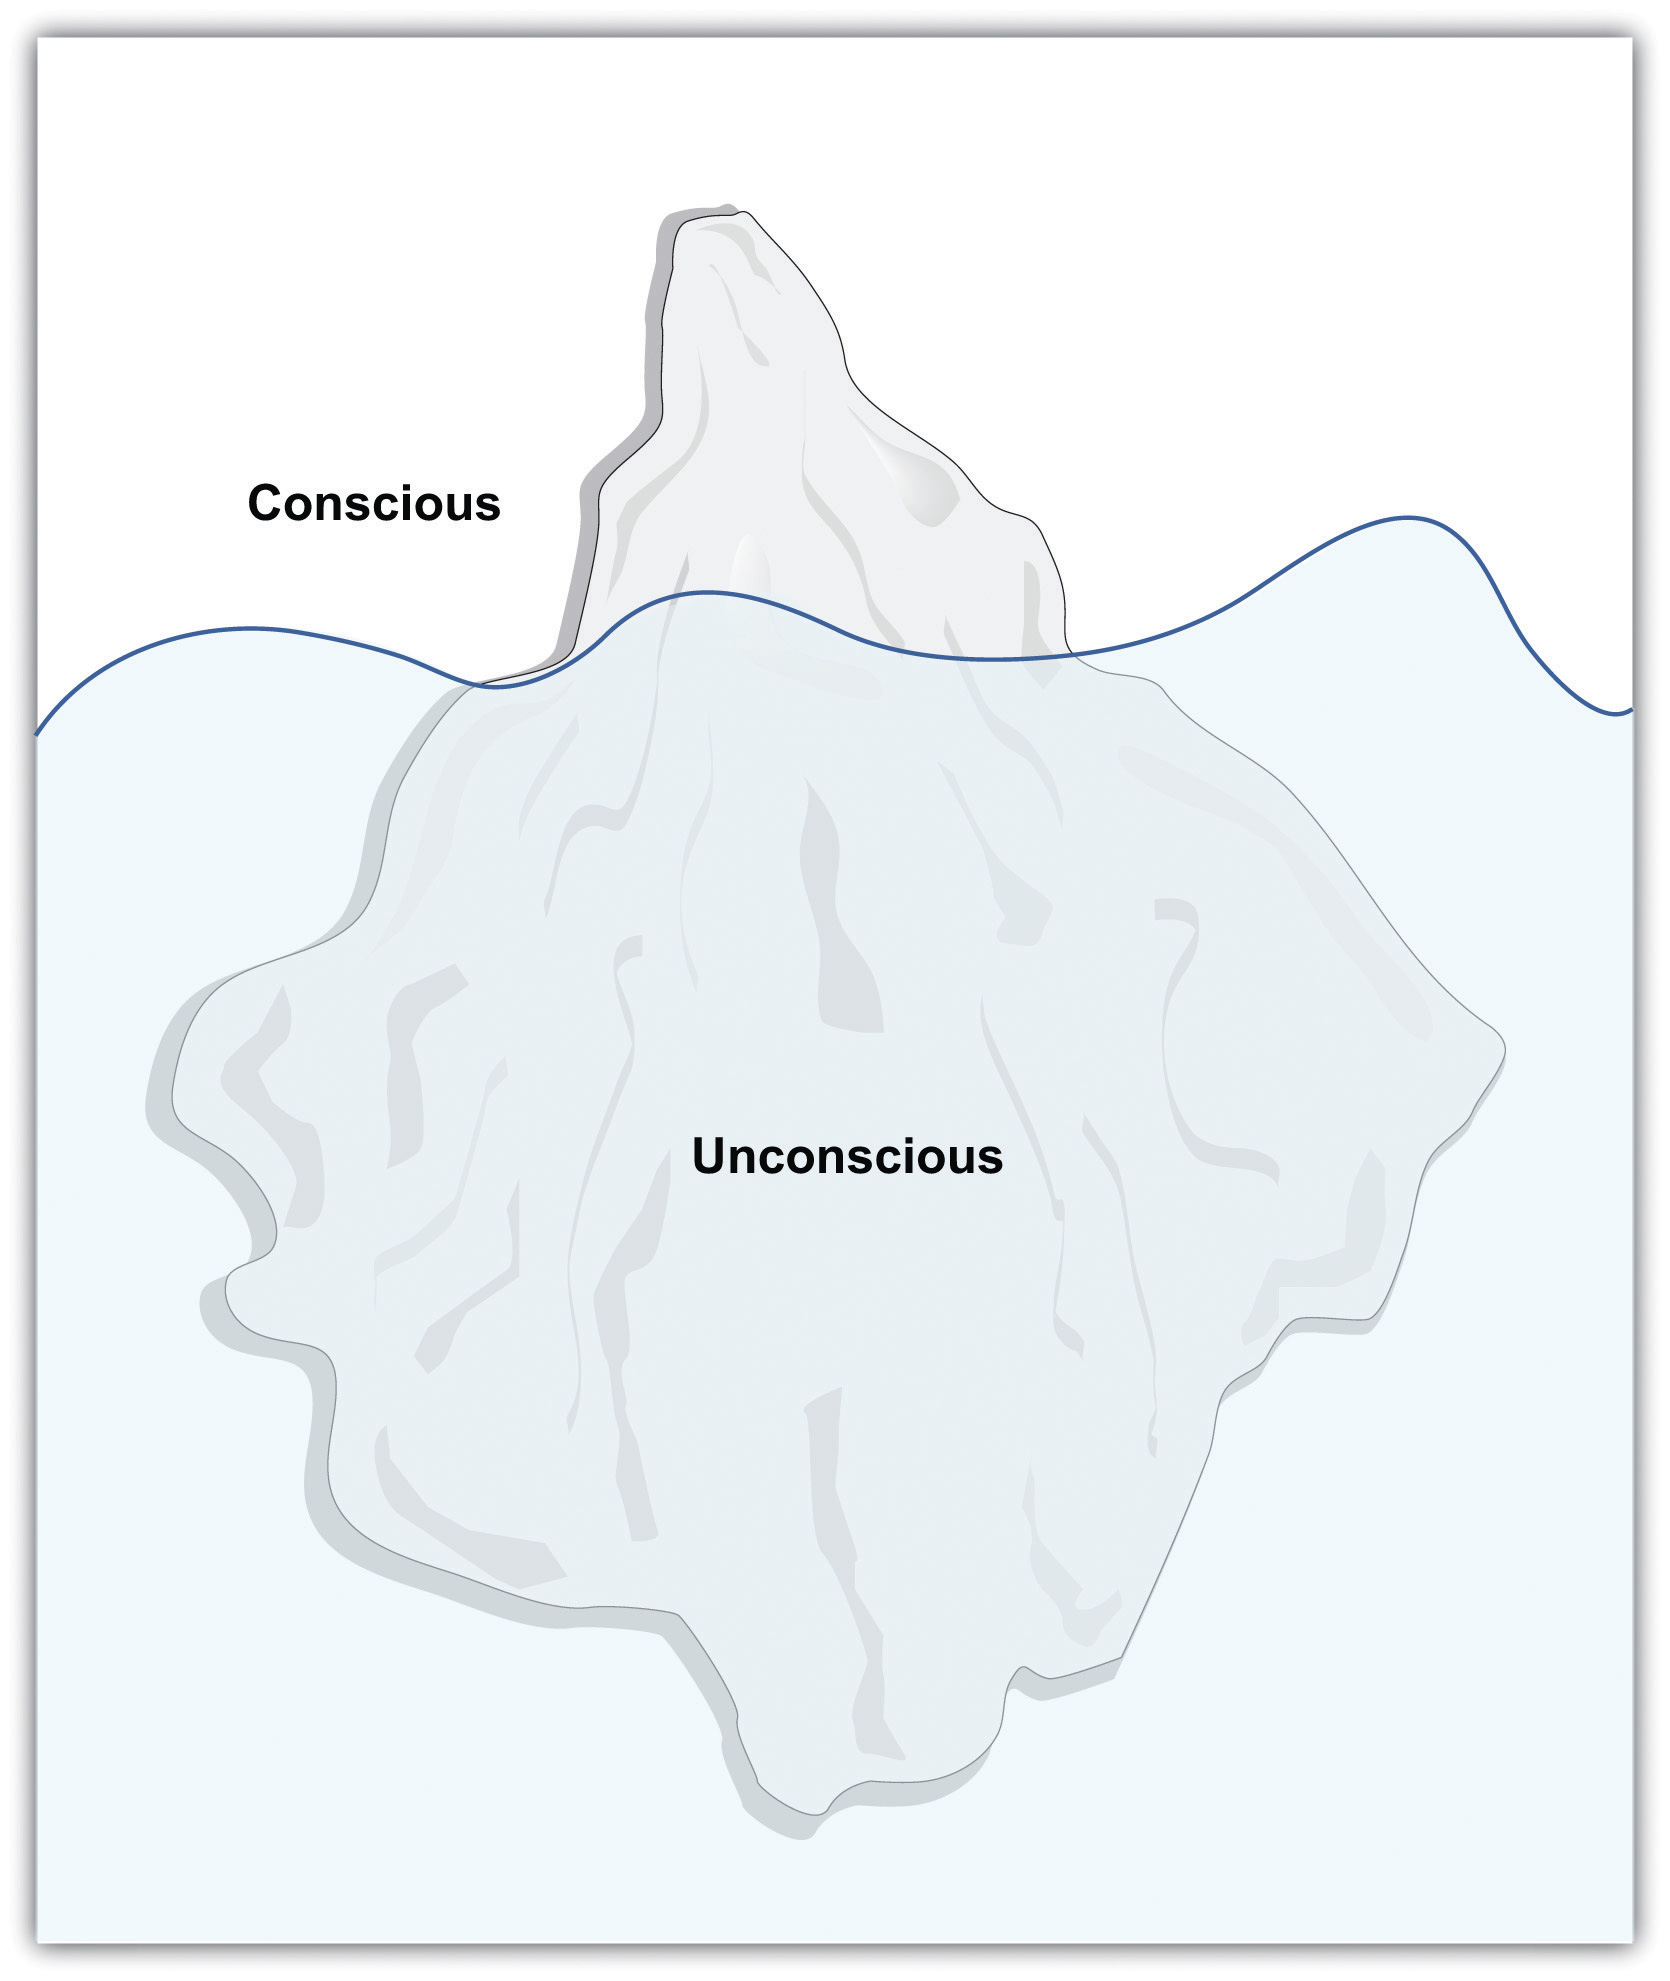 personality figure 11 8 mind as iceberg